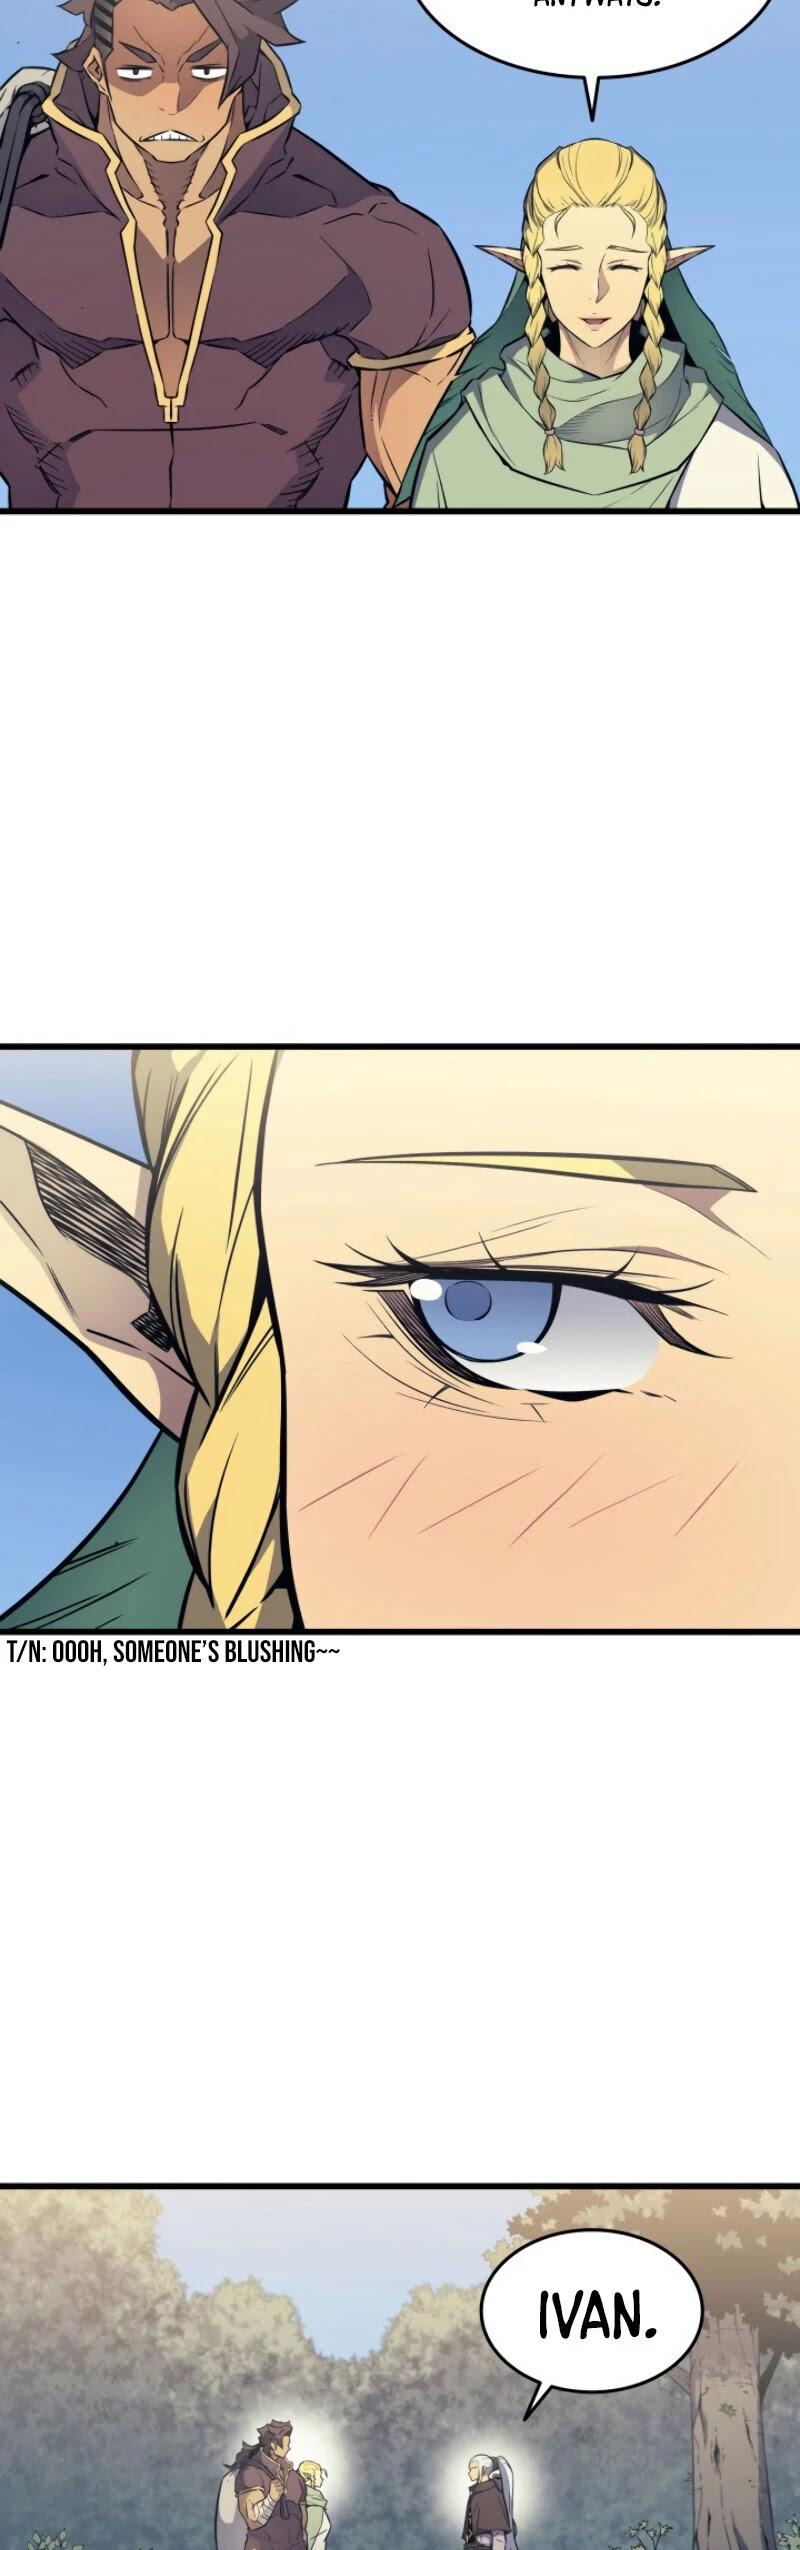 The Great Mage Returns After 4000 Years Chapter 89 page 26 - Mangakakalots.com